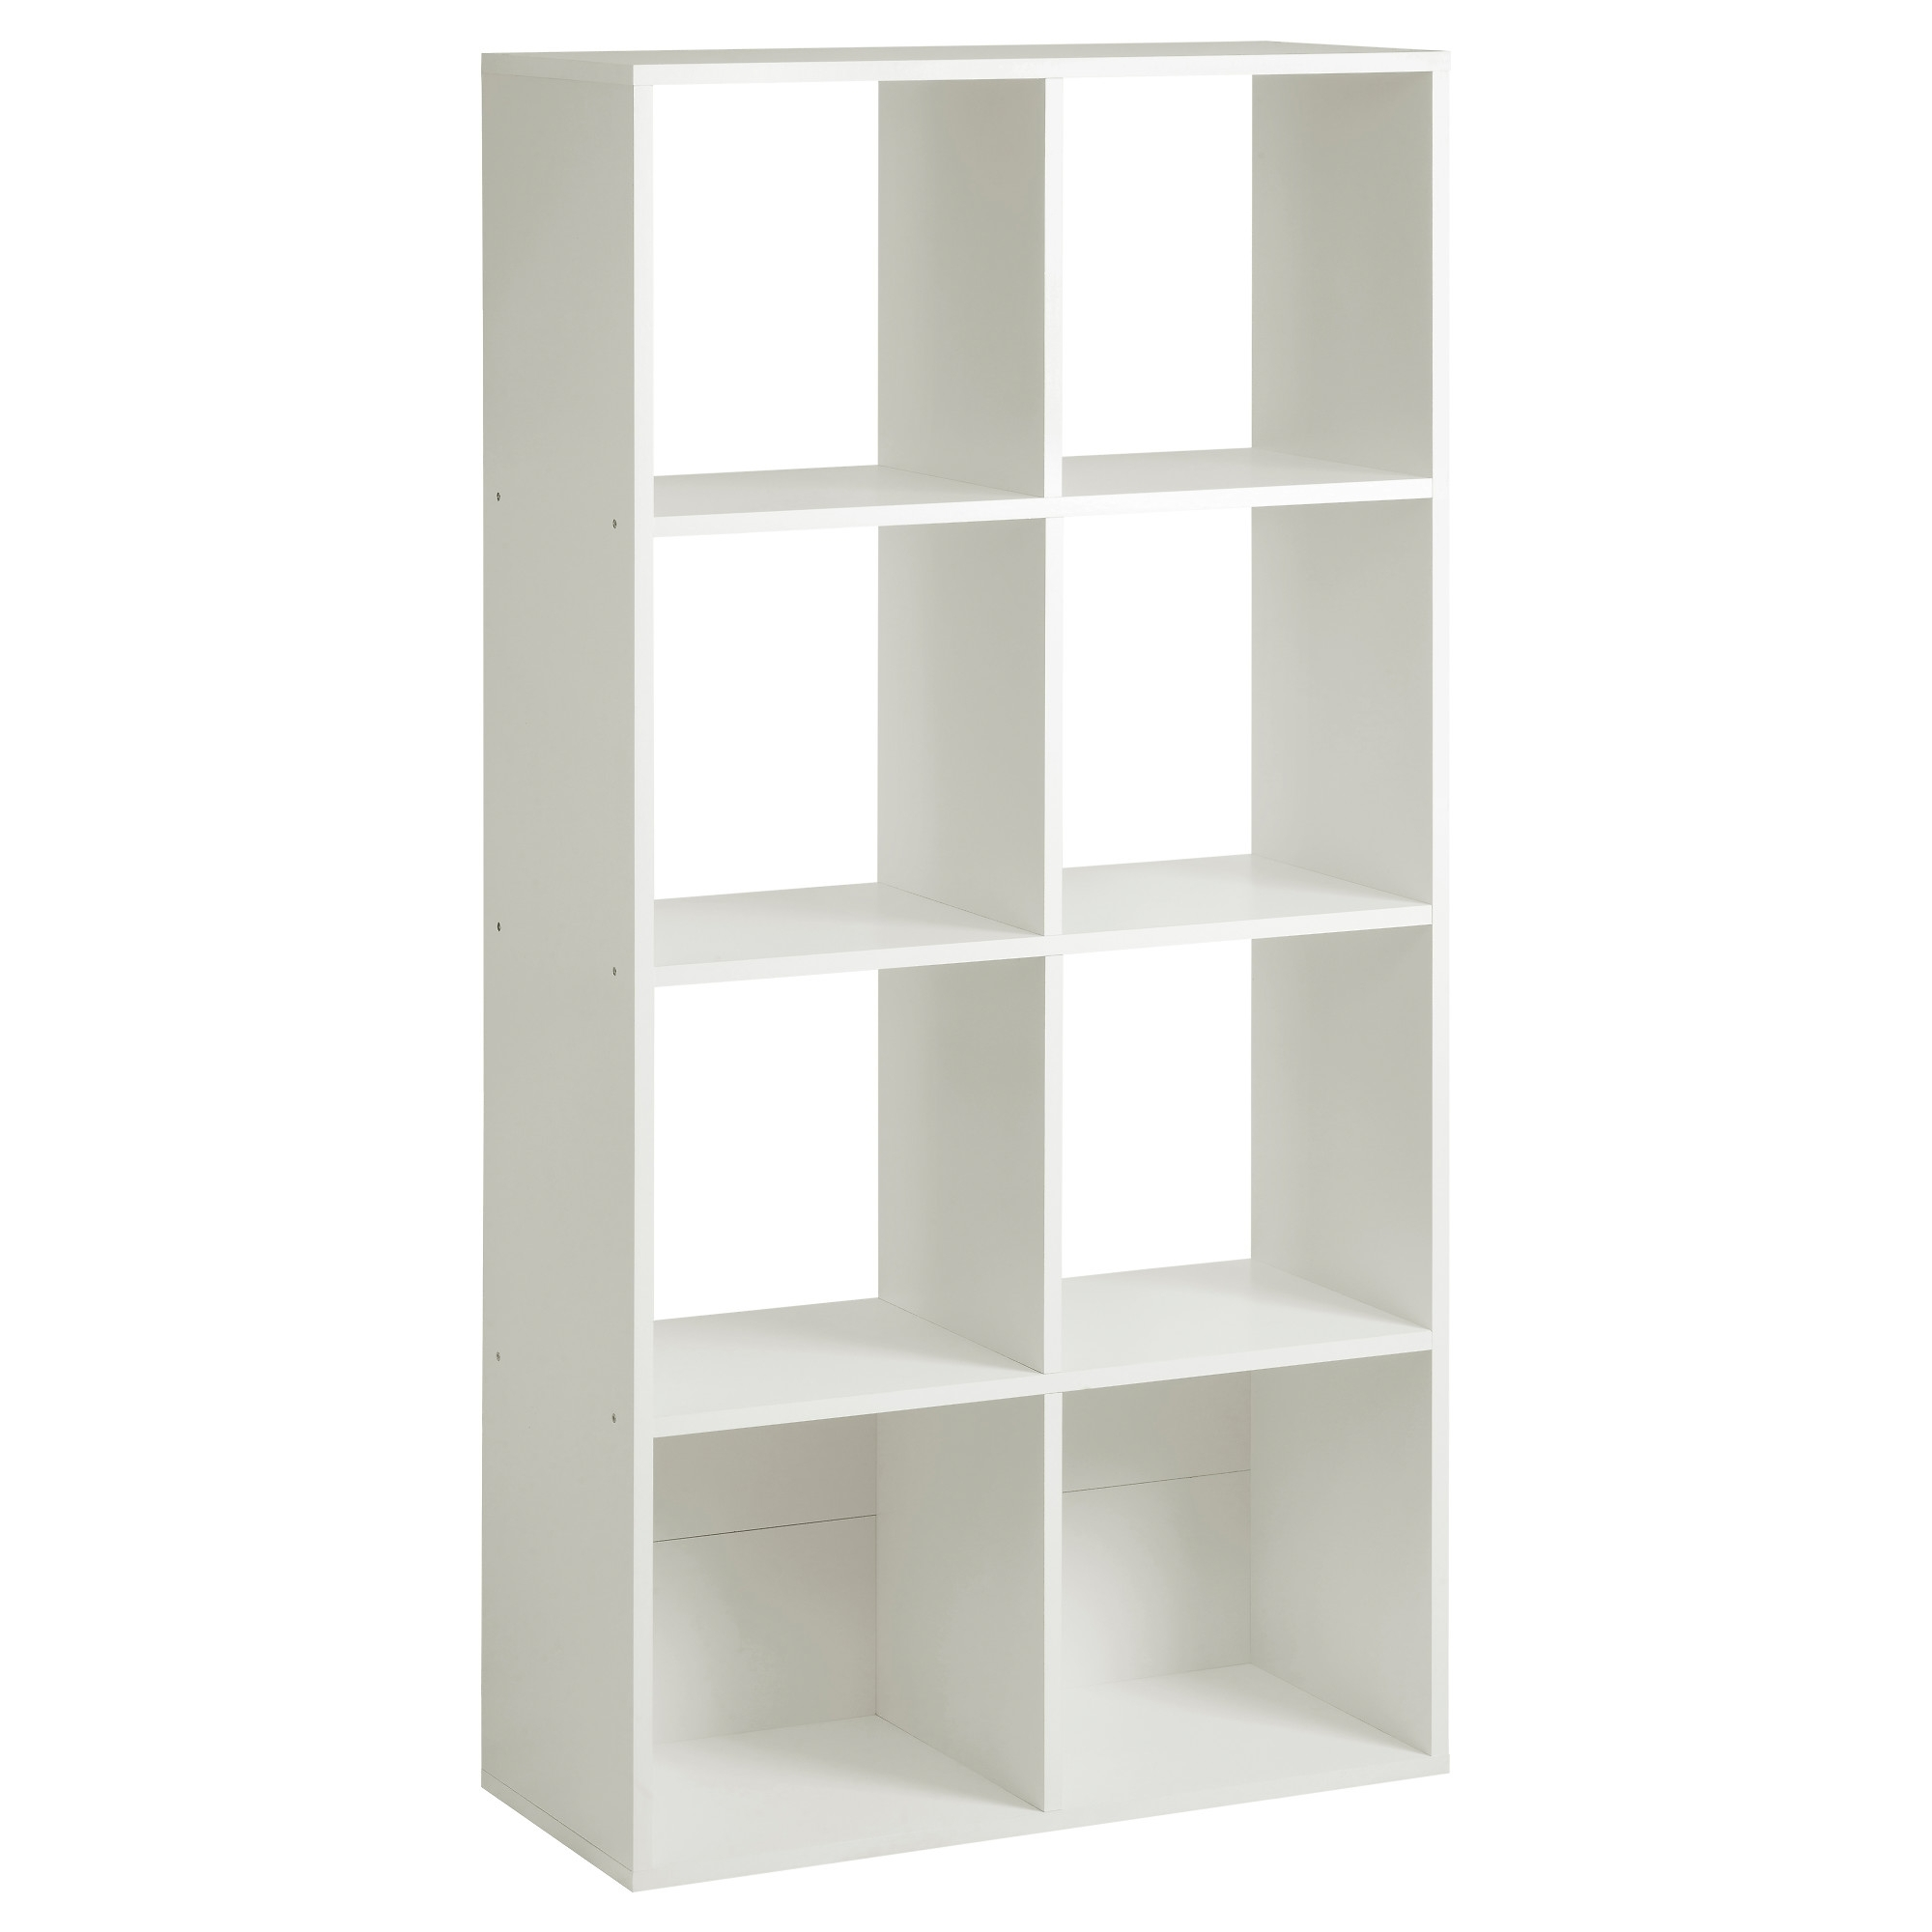 Ikea Cube Bookcases With Regard To Widely Used Biträde Shelving Unit White 68x135 Cm – Ikea (View 4 of 15)